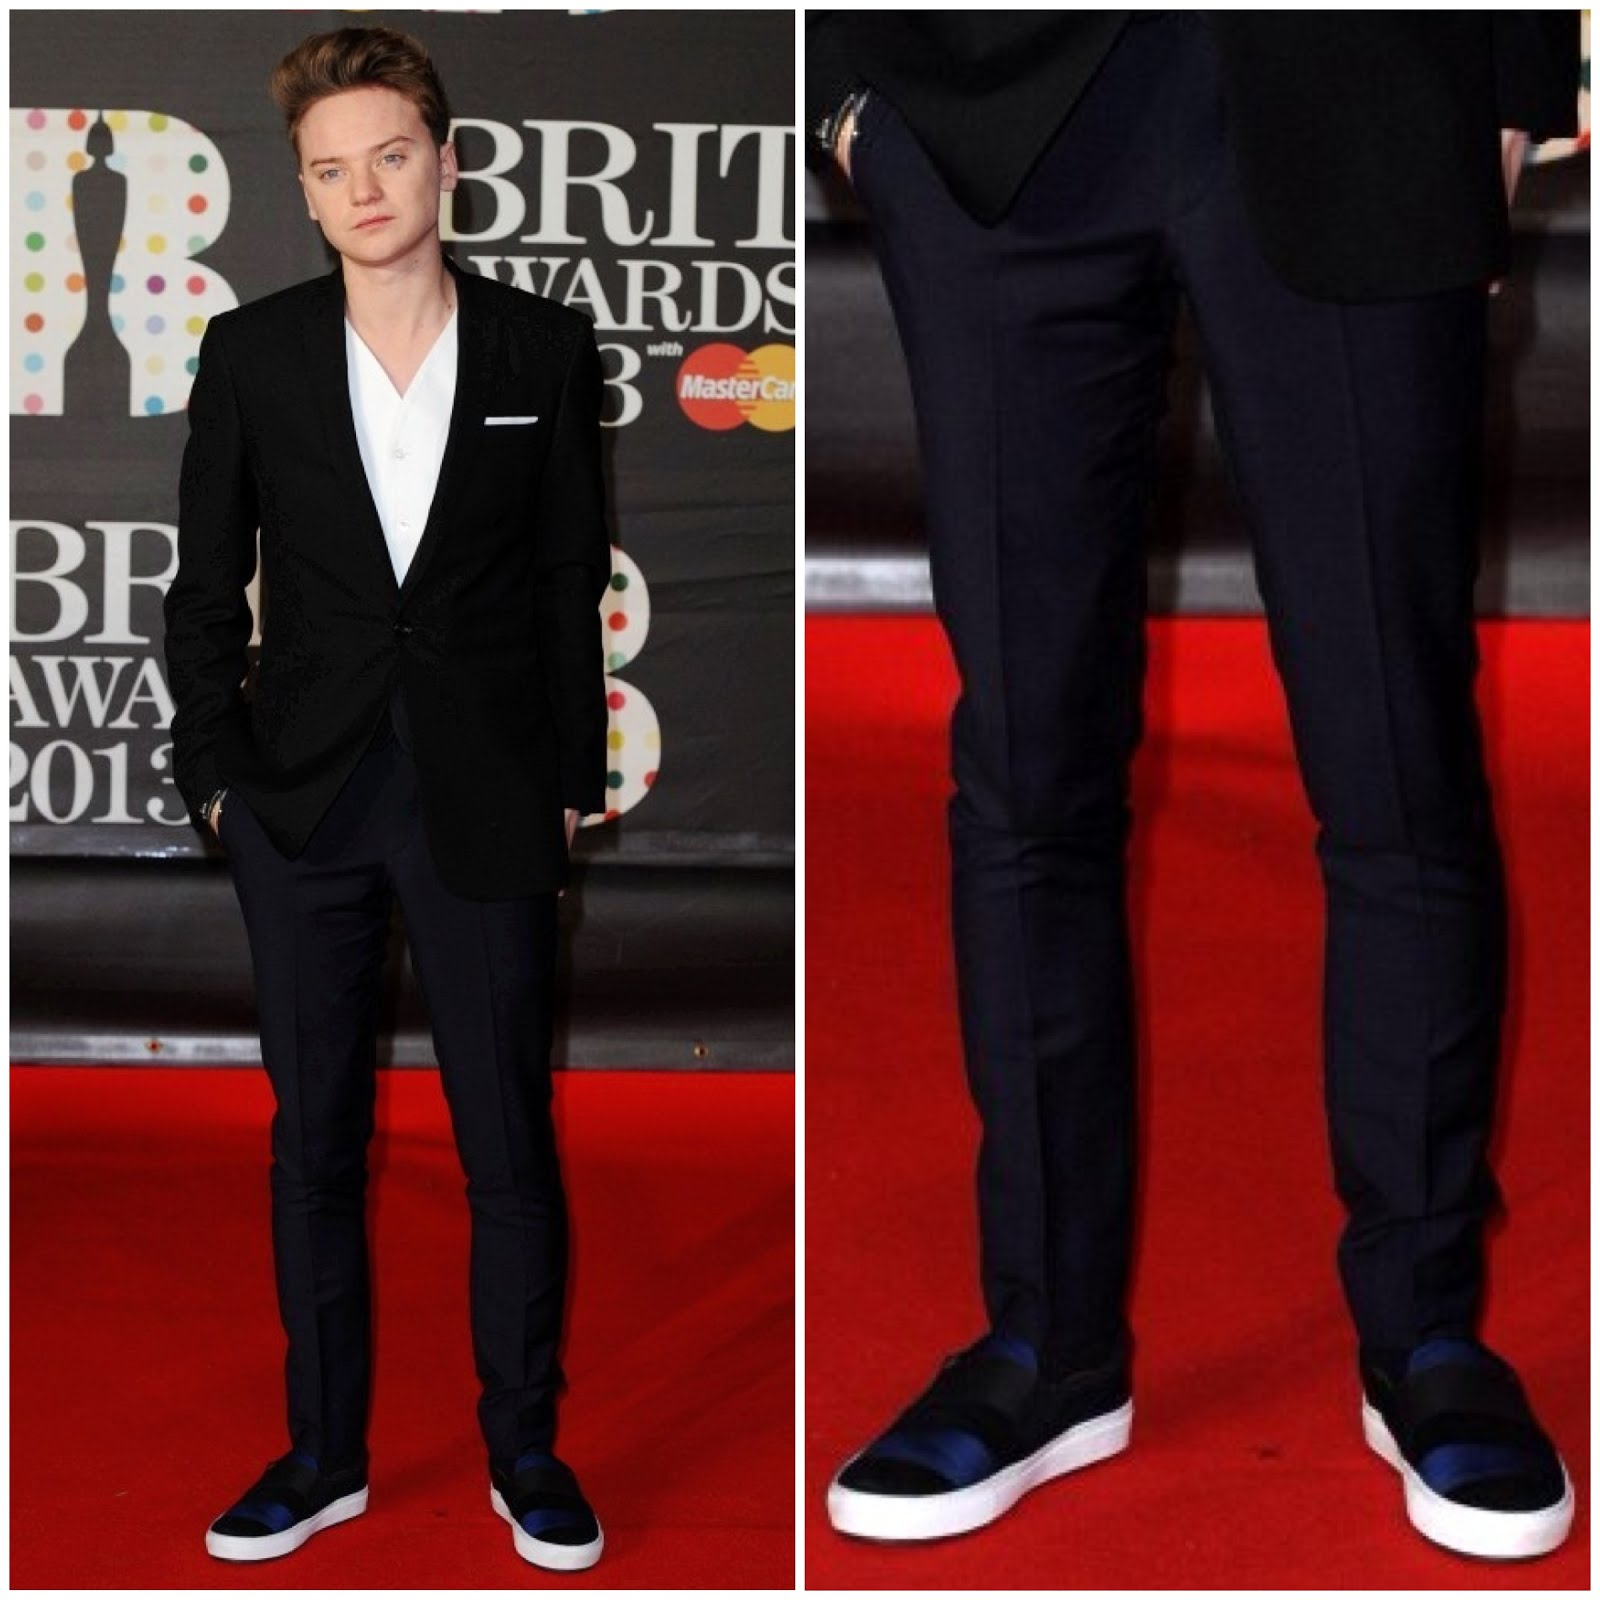 00O00 Menswear Blog Conor Maynard's ACNE Hans Striped Slip-on shoes at the Brit Awards 2013 #Brits2013